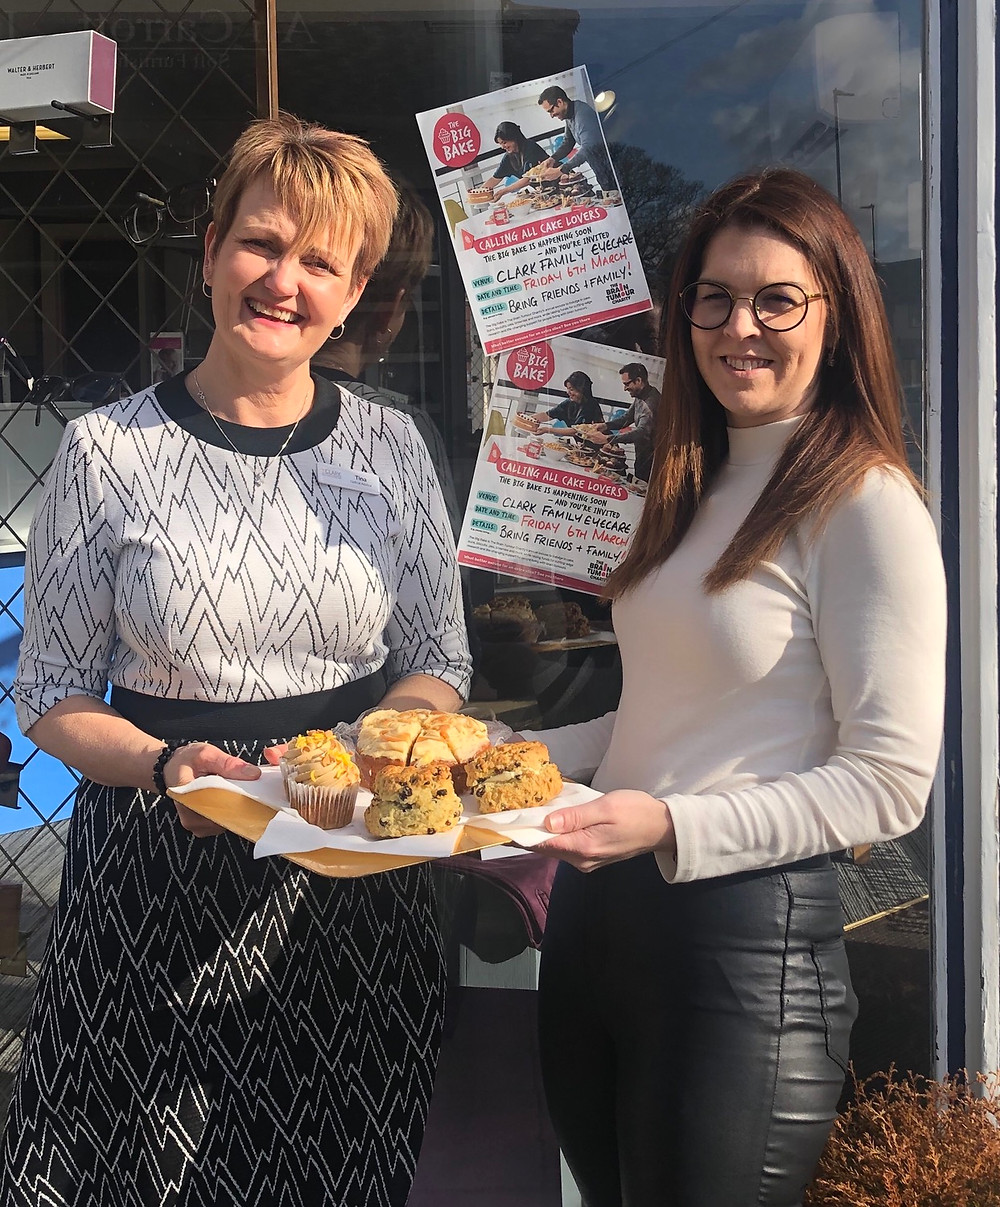 Tina and Annica holding cakes to advertise the Big Bake sale